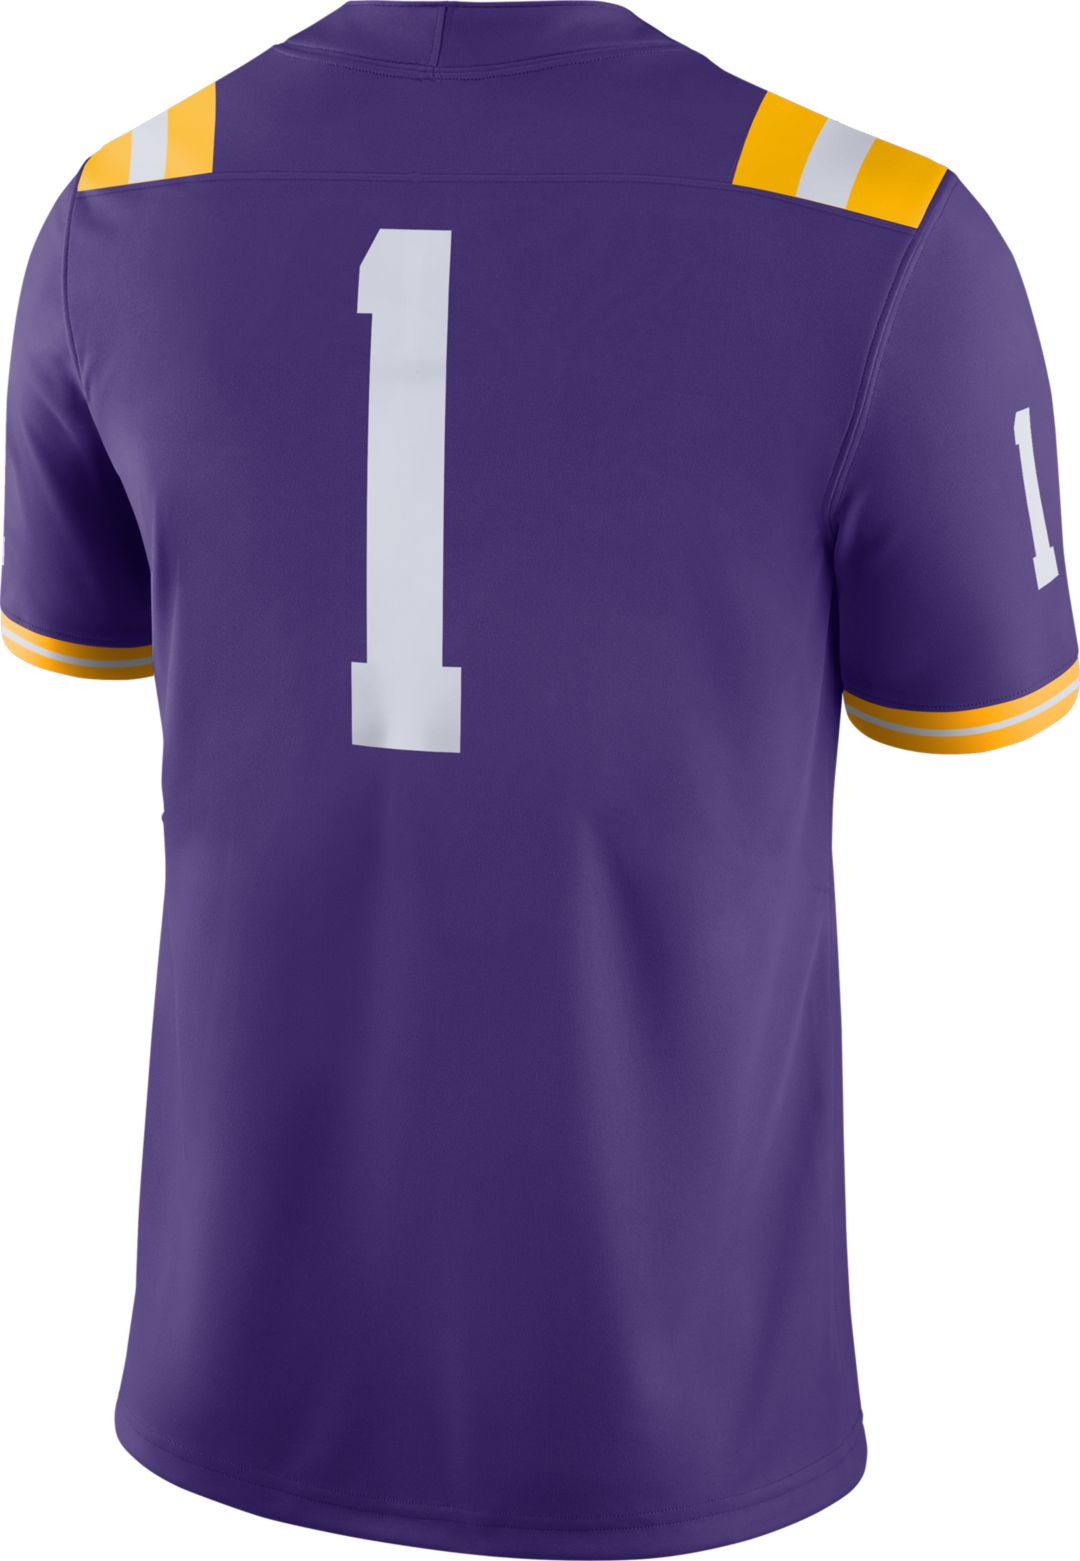 super popular ac69d 6beee Nike Men's LSU Tigers #1 Purple Dri-FIT Game Football Jersey